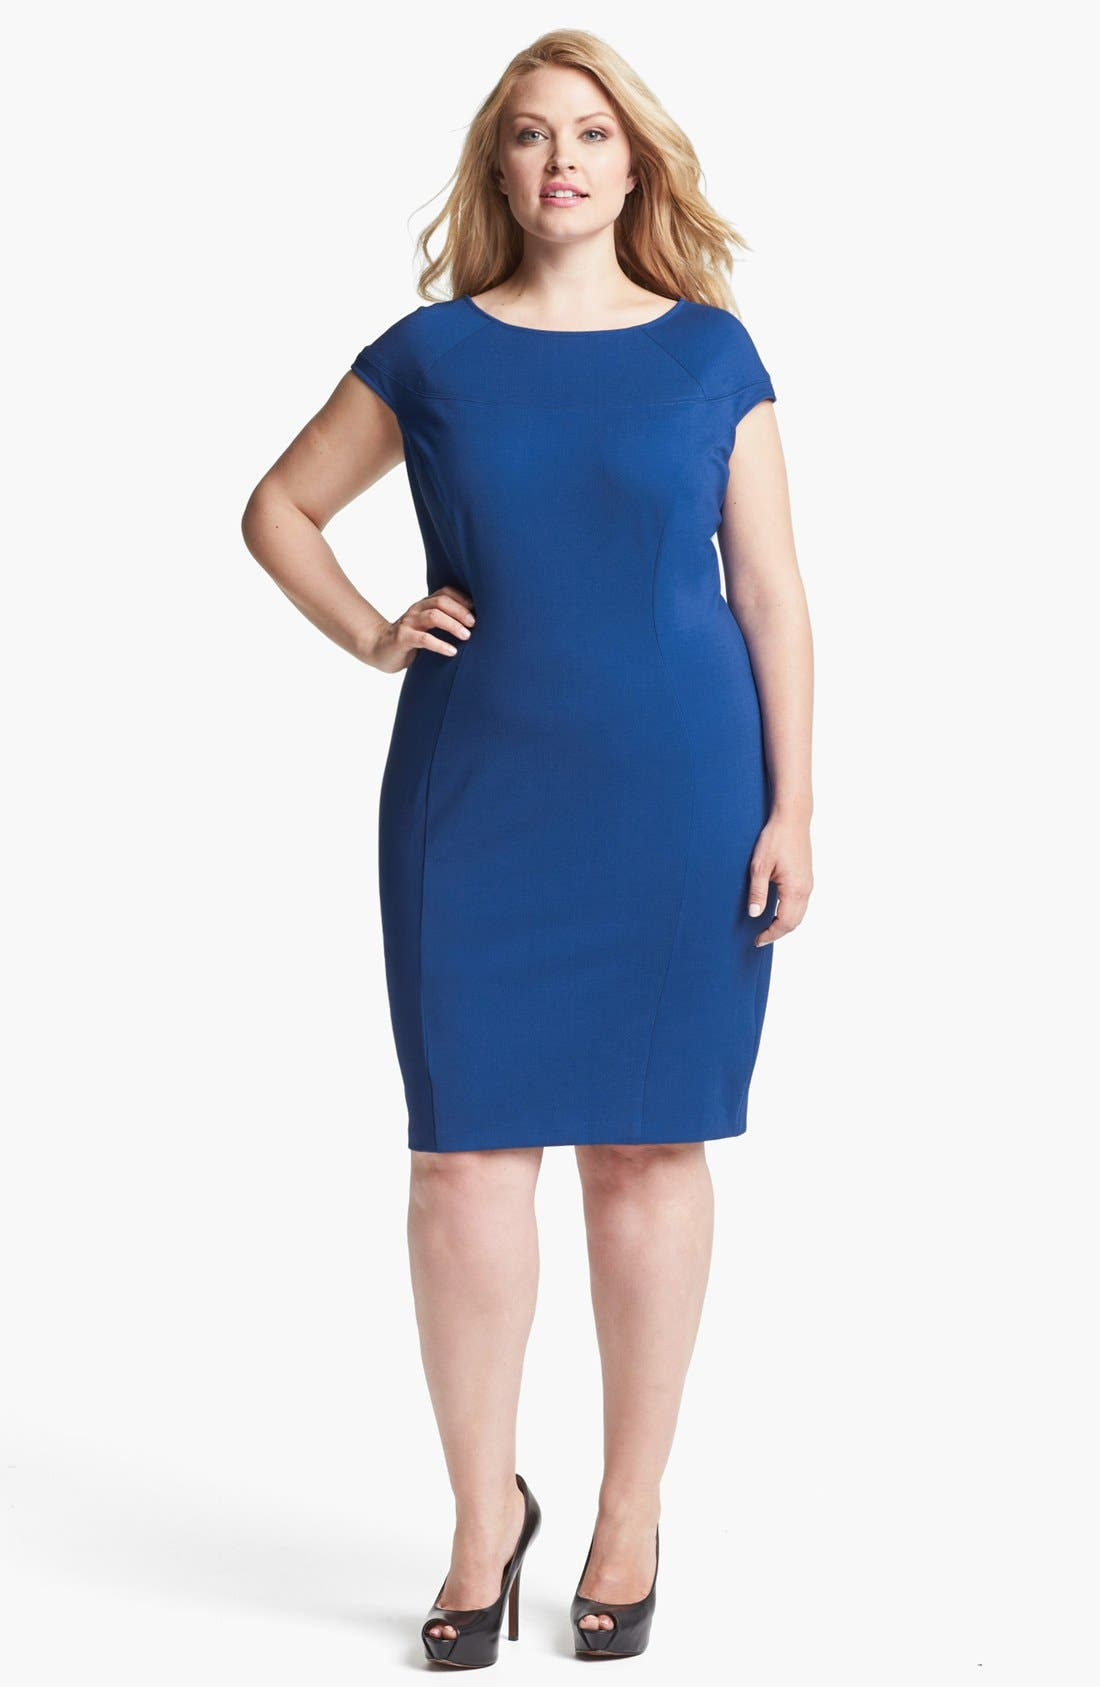 Alternate Image 1 Selected - ABS by Allen Schwartz Fitted Ponte Knit Dress (Plus Size)